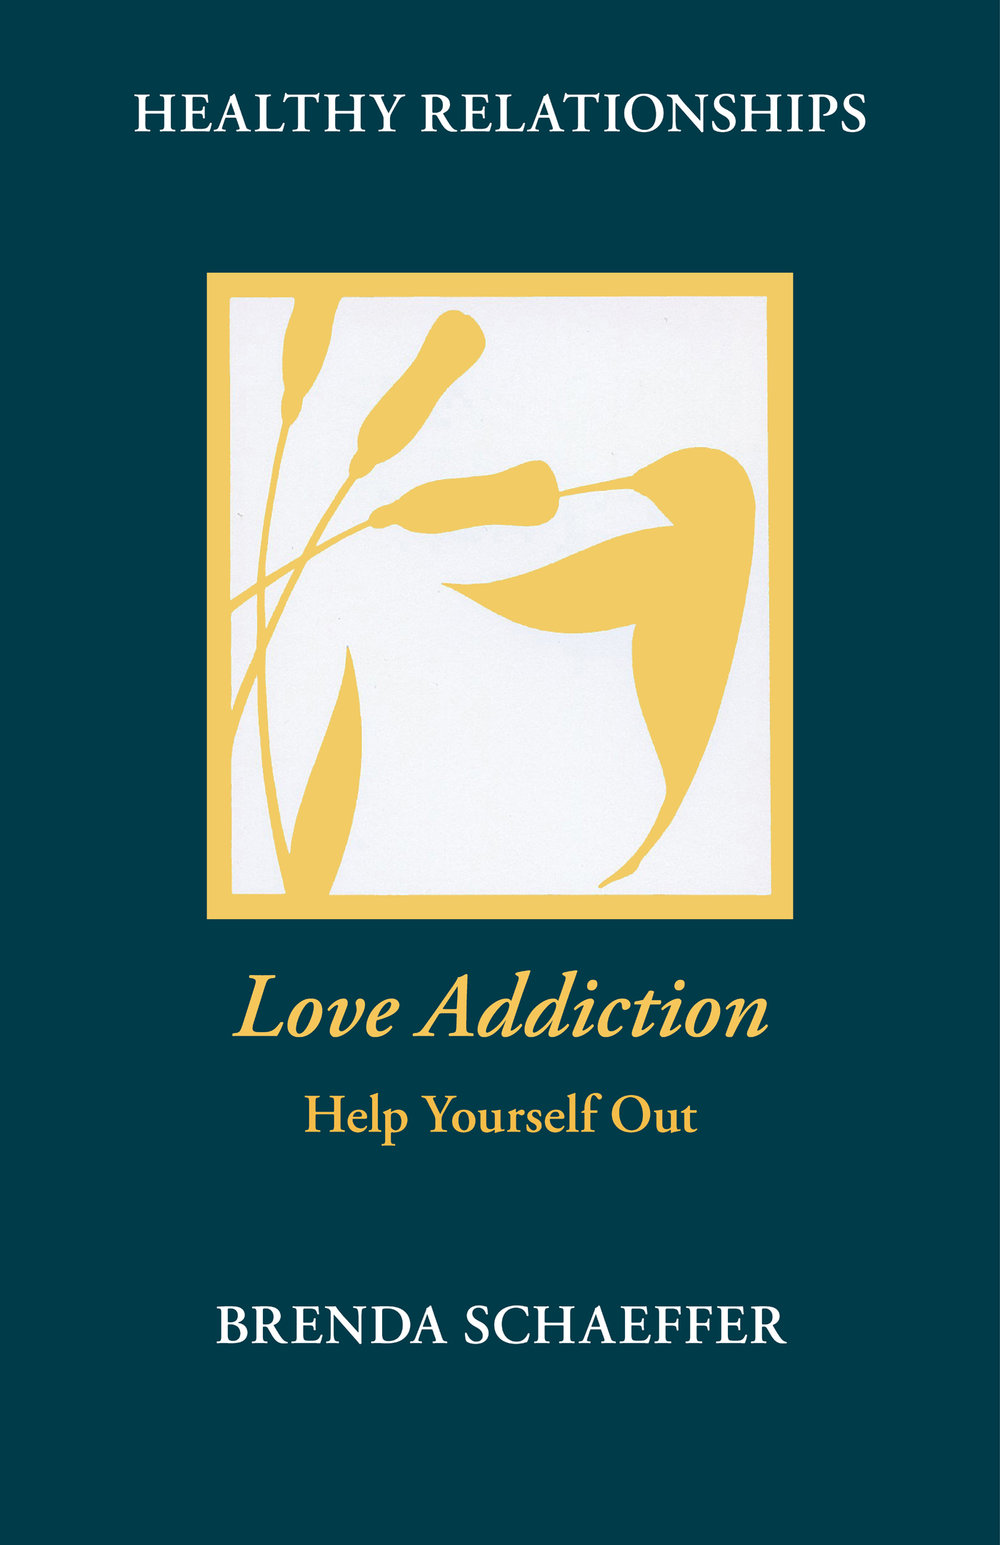 Love addiction cover.jpg